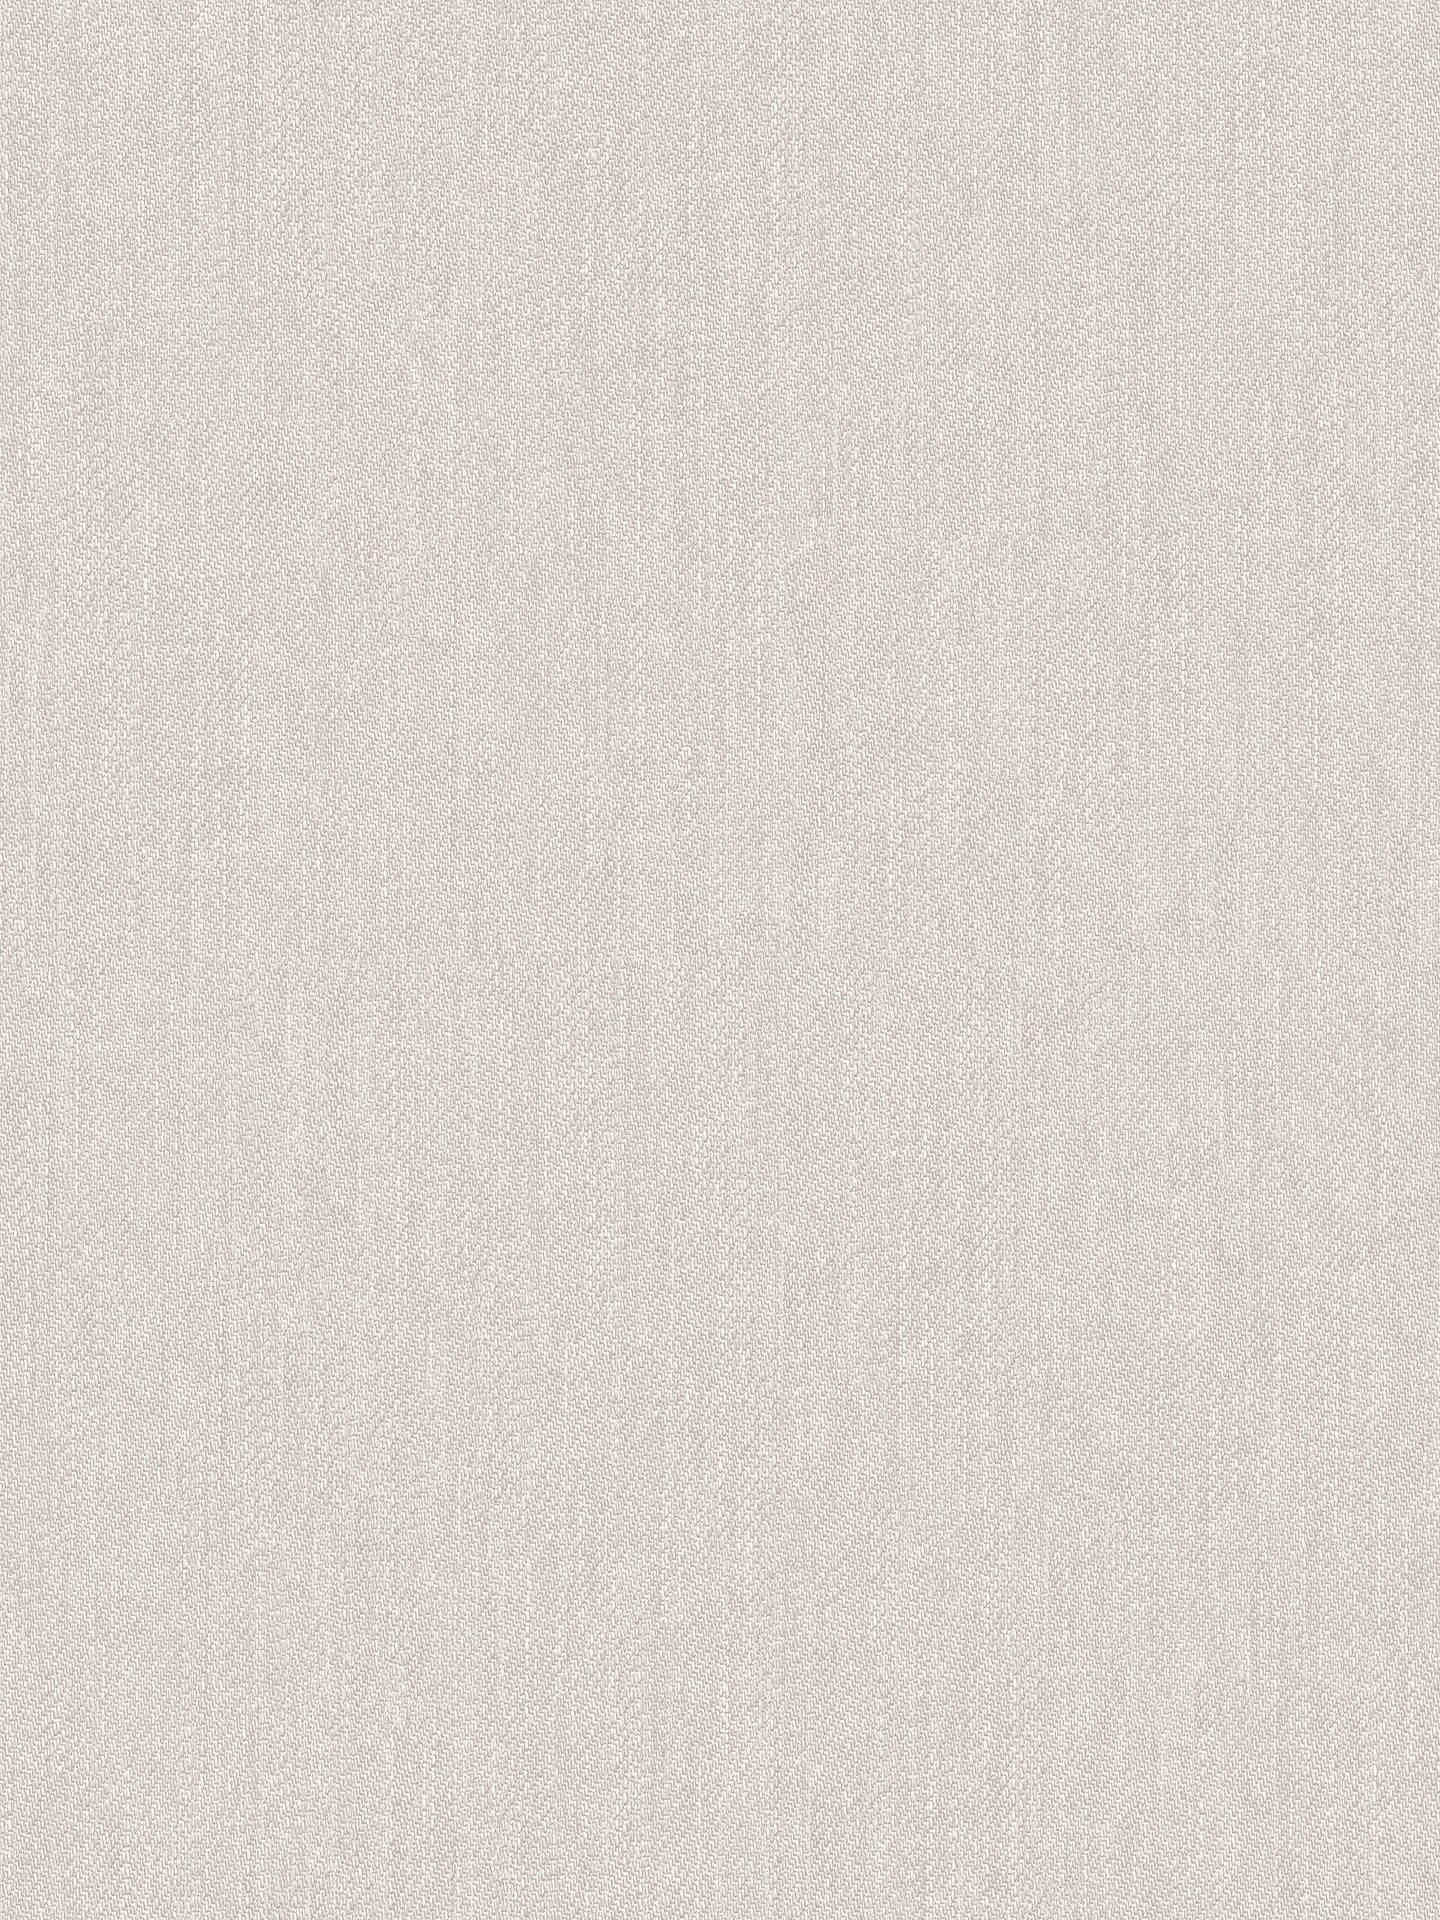 Buy Galerie Jack n Rose Junior Hessian Textured Plain Wallpaper, JR1202 Online at johnlewis.com